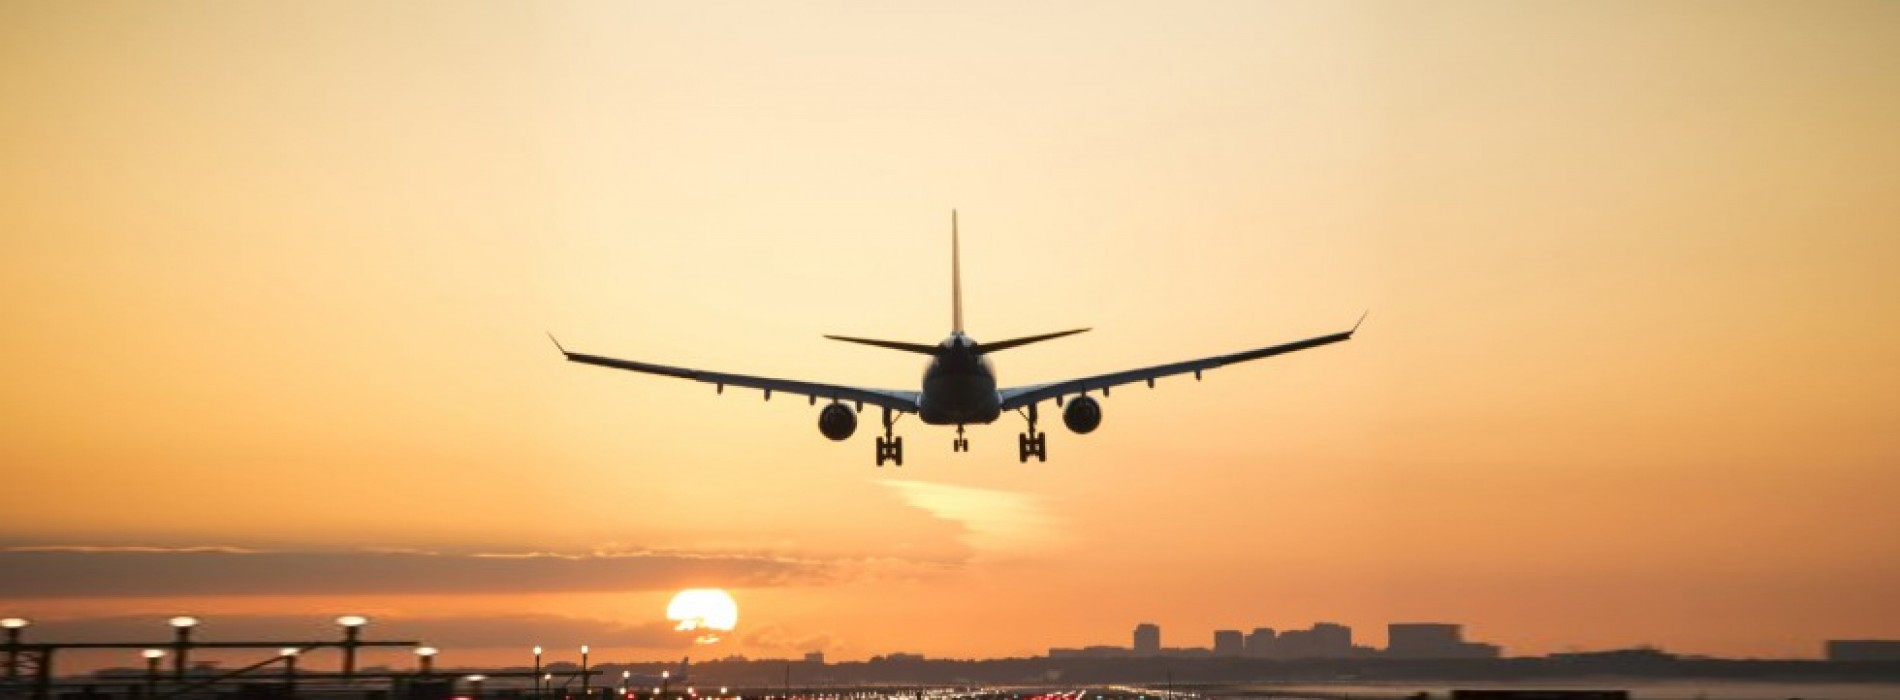 Air travel demand in India continues in double digits for 36